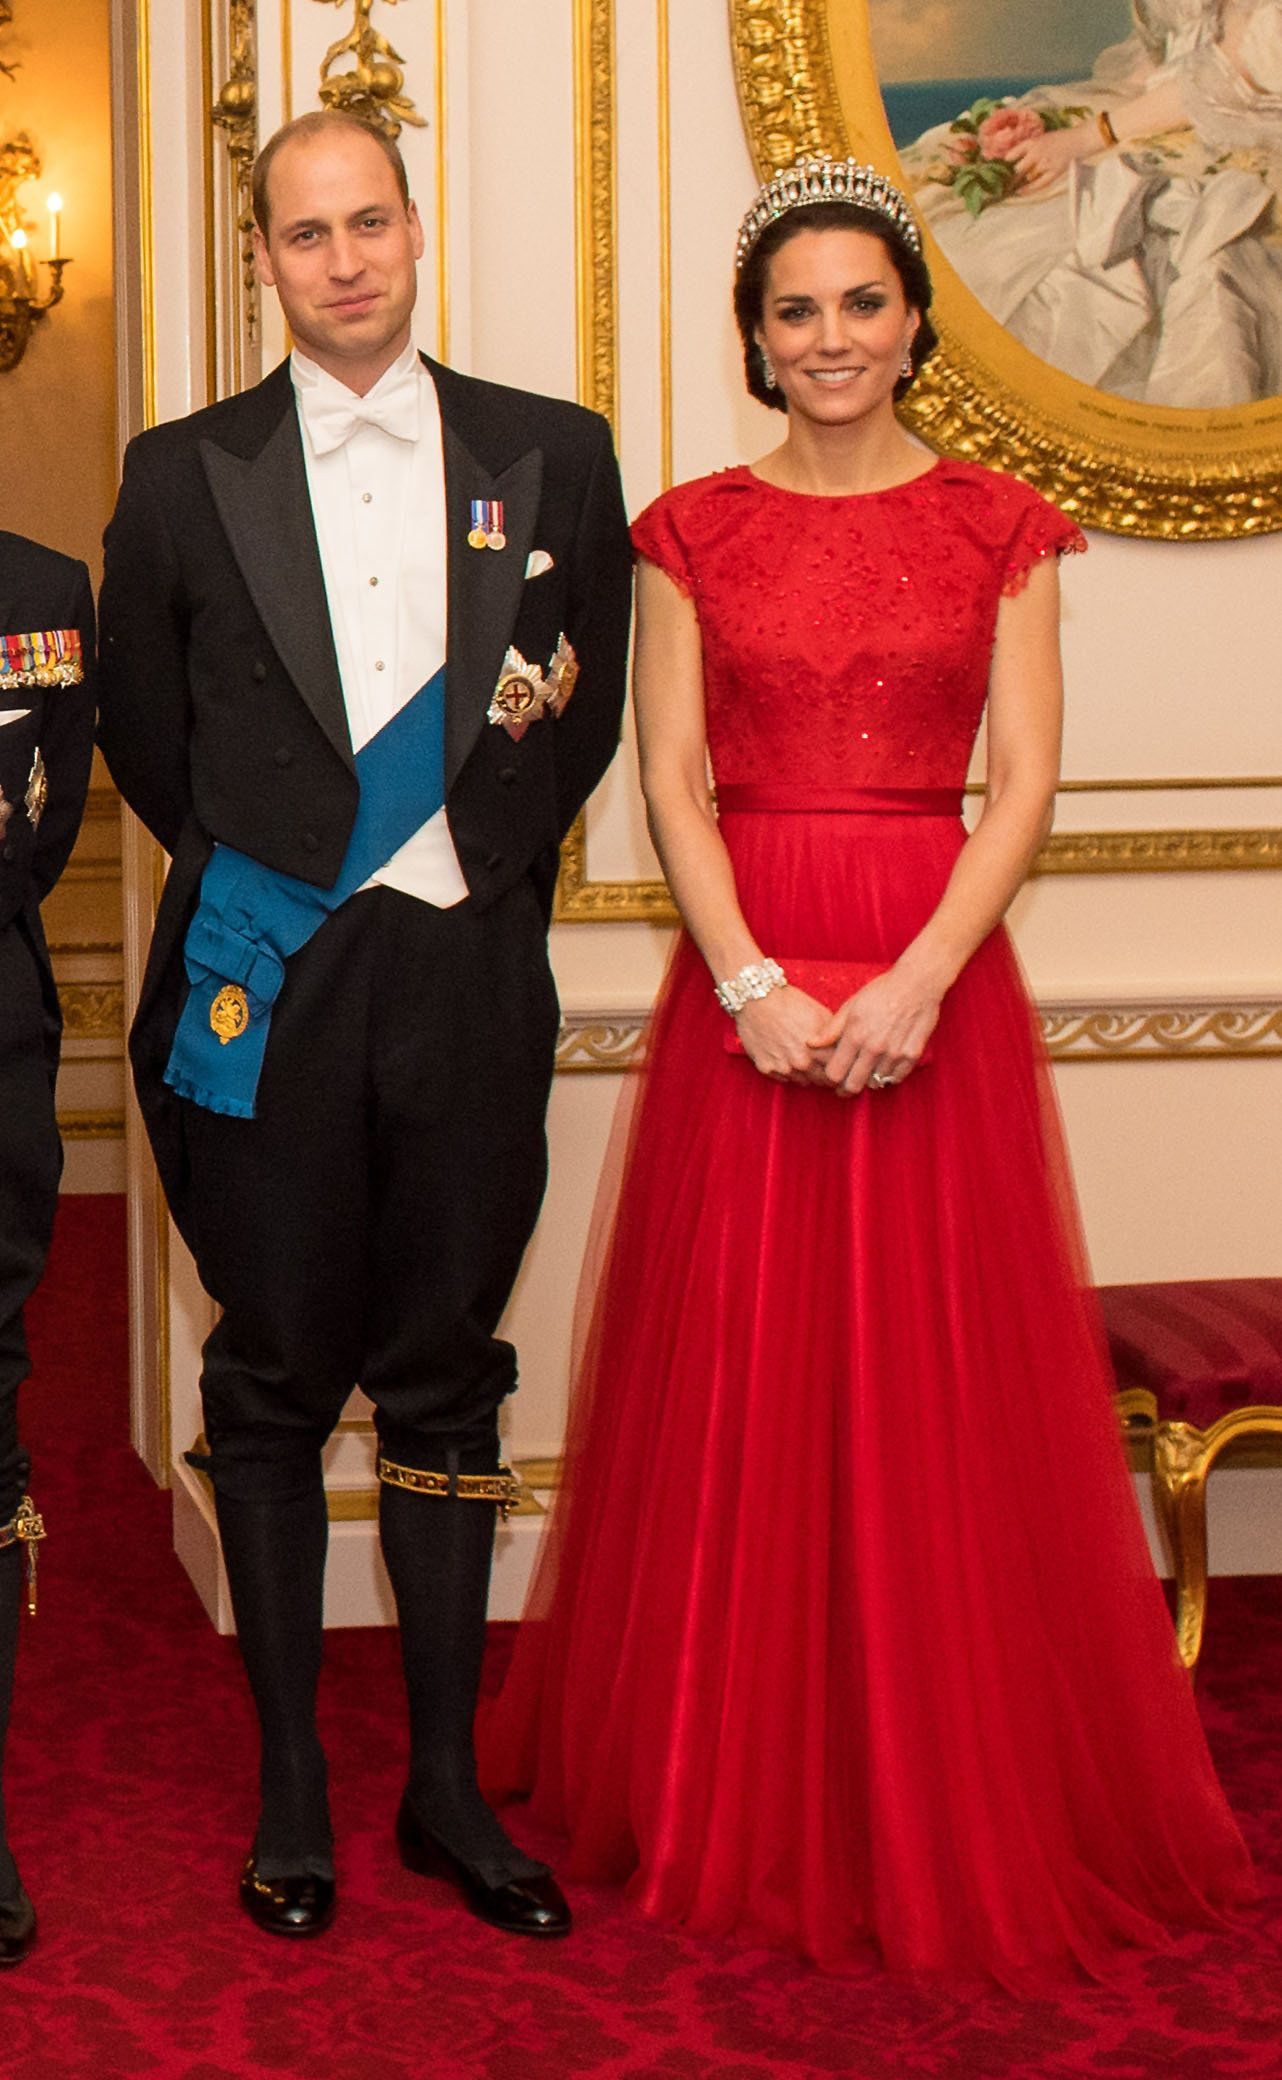 ALTERNATE CROPThe Duke and Duchess of Cambridge arrive for the annual evening reception for members of the Diplomatic Corps at Buckingham Palace, London.